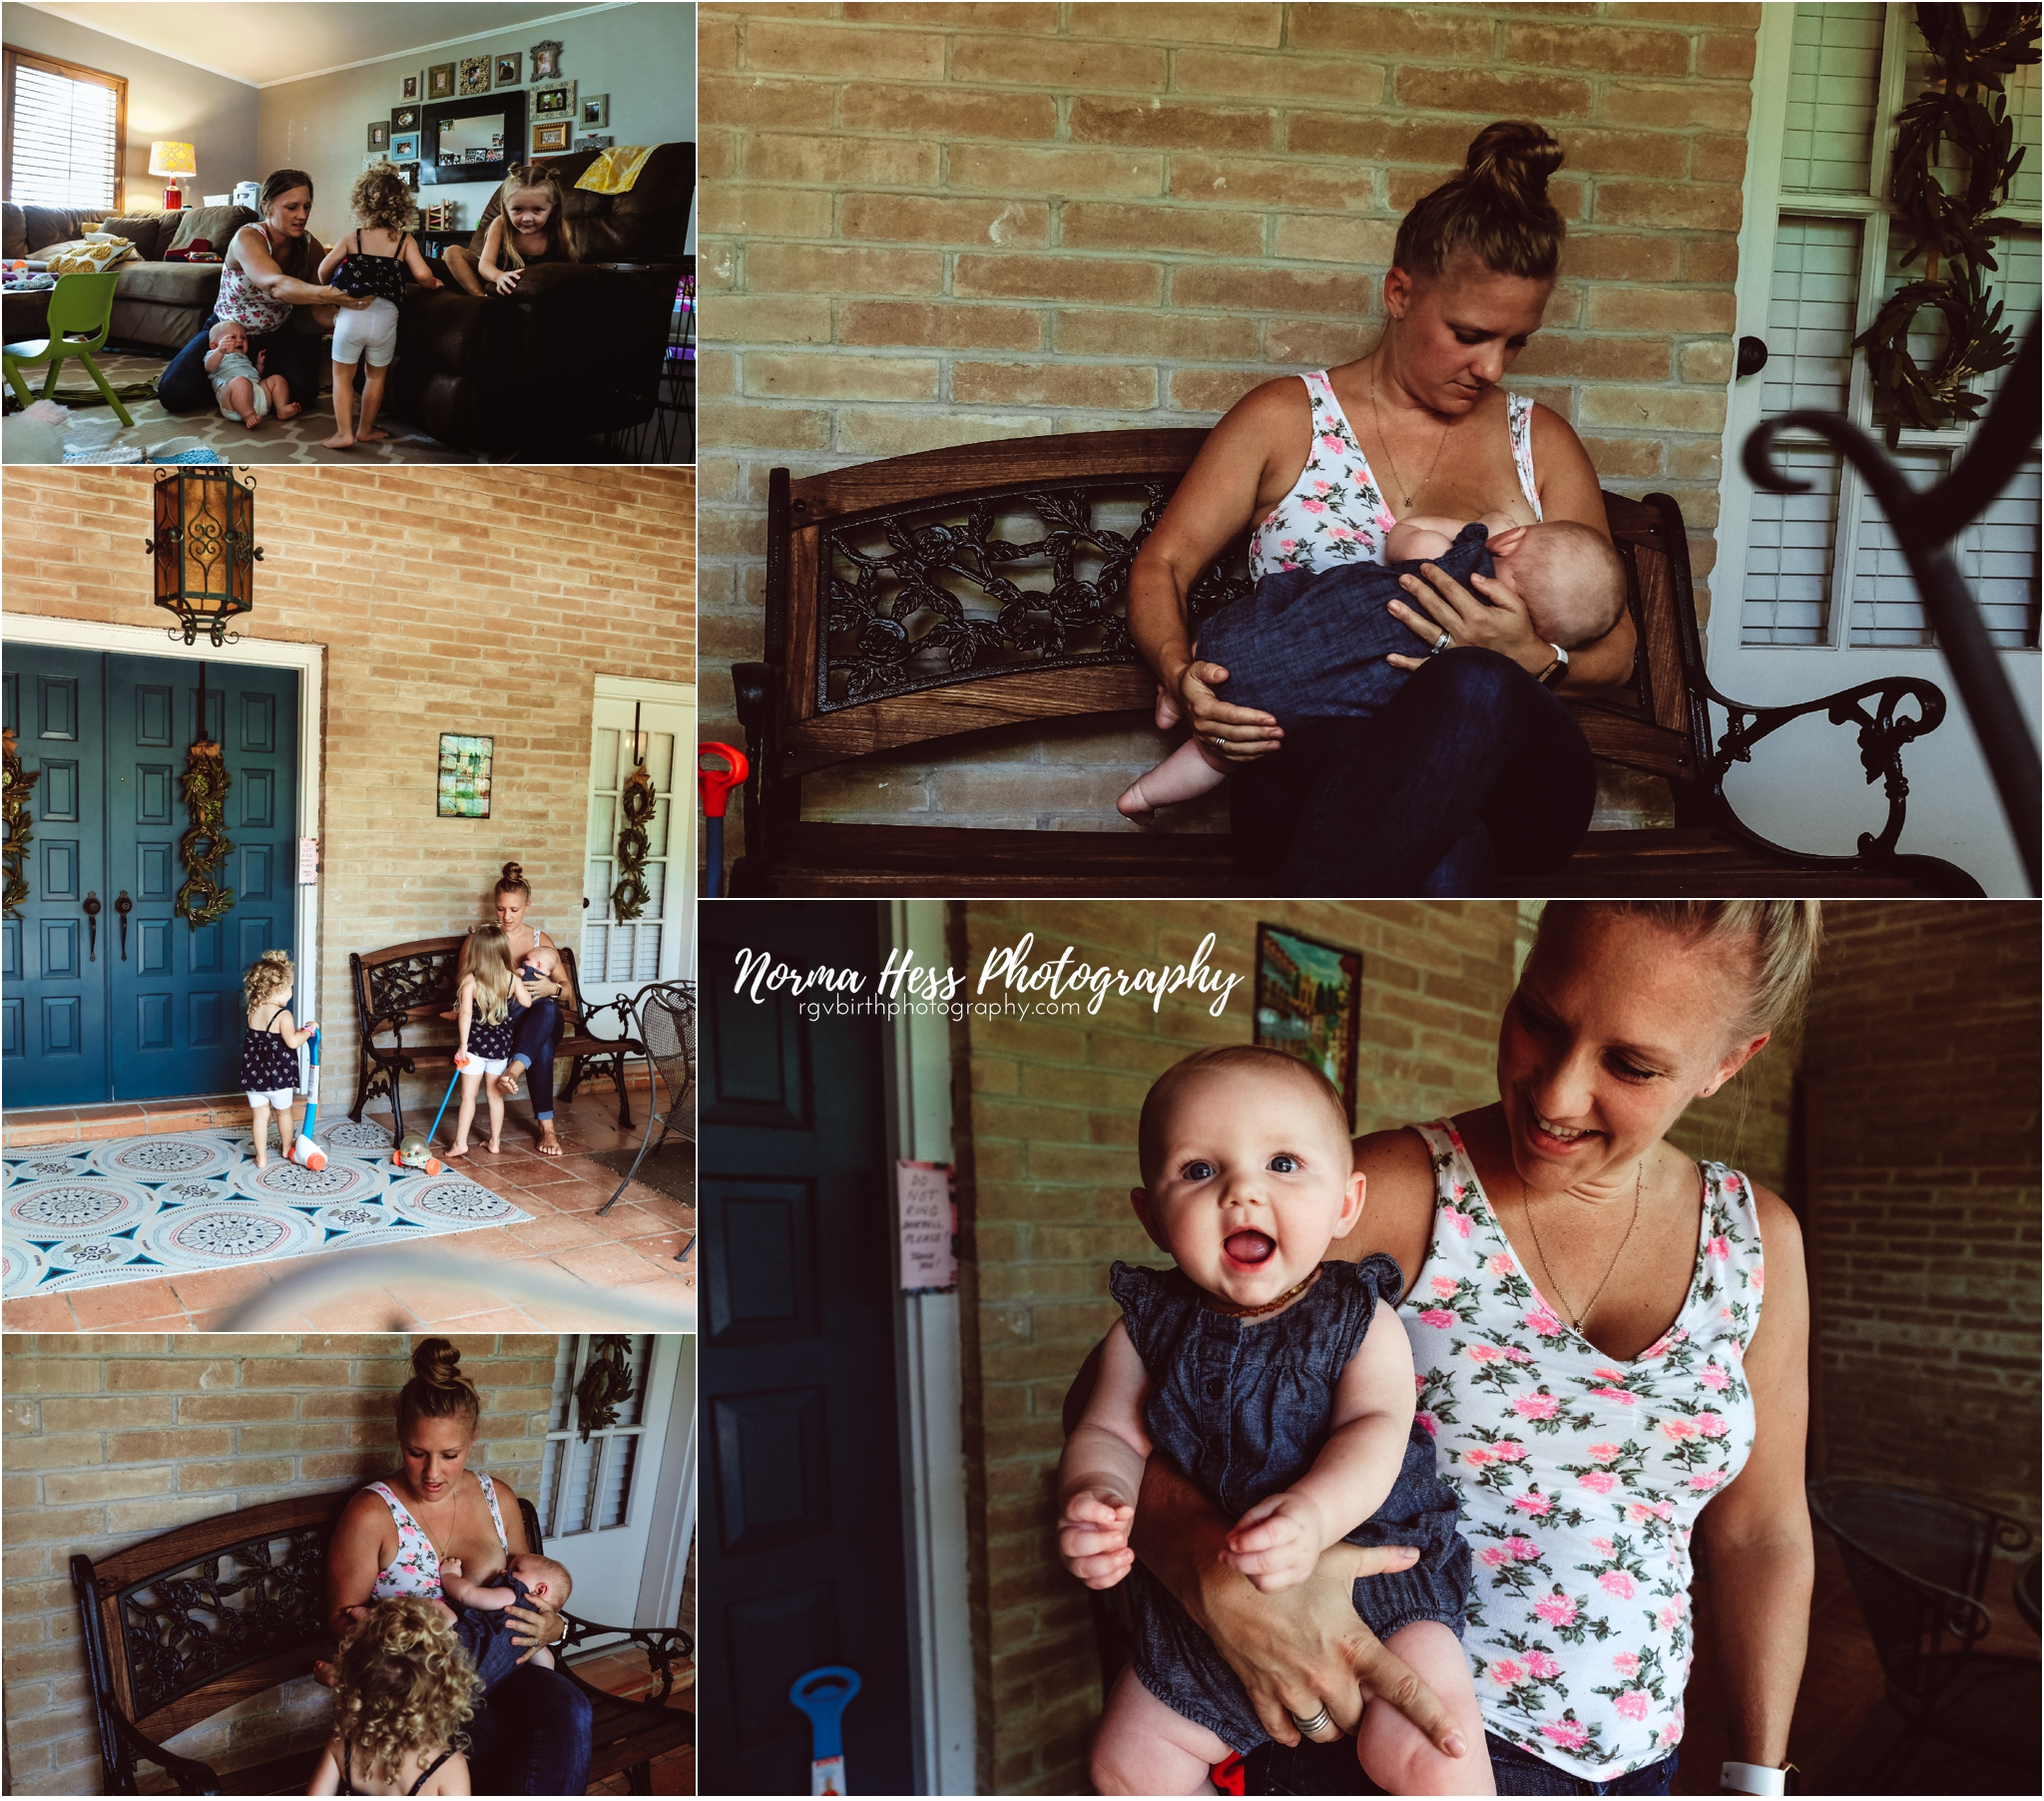 RGV Moms | A Day In The Life Photography by Norma Hess